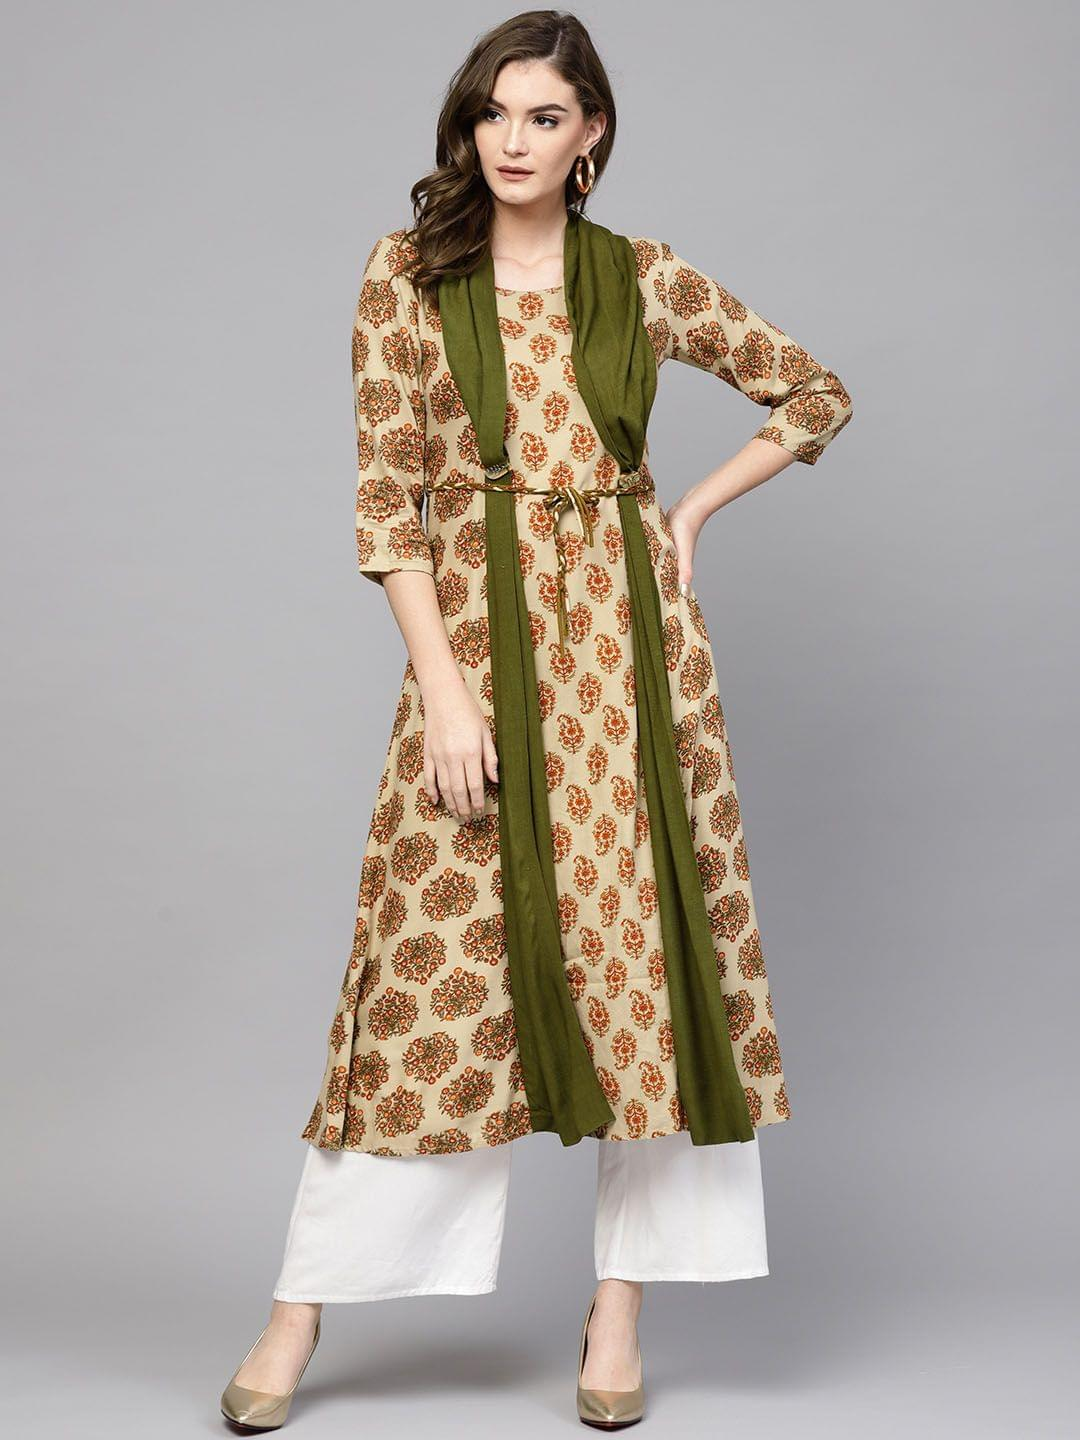 Women Beige & Olive Green Printed A-Line Kurta with Attached Draped Dupatta